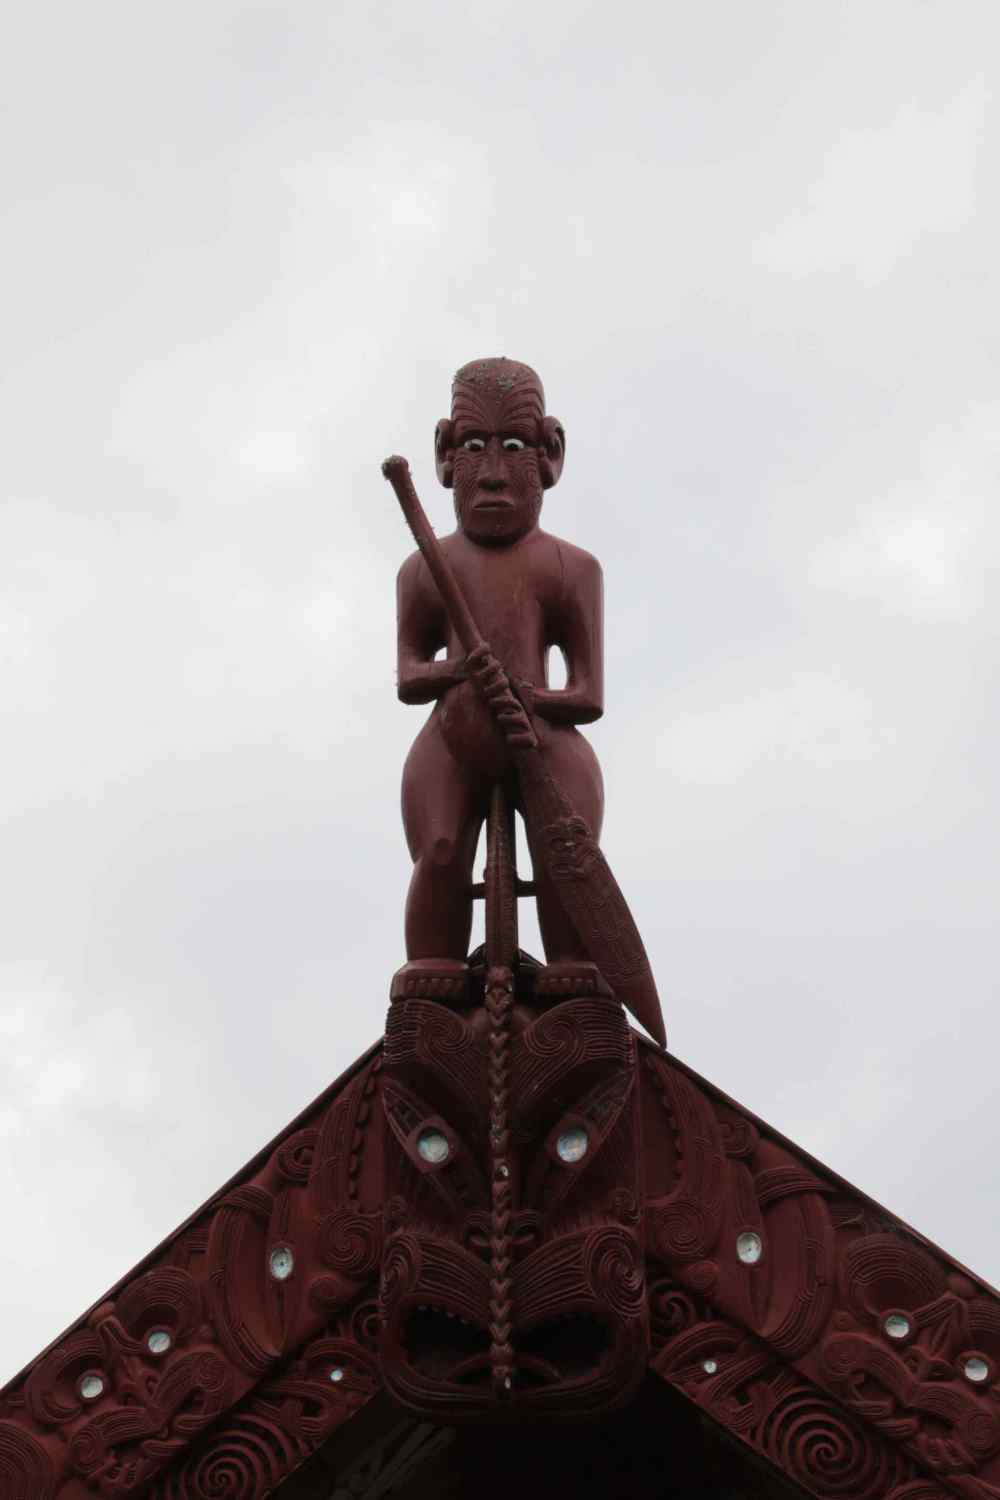 Figurehead atop the Meeting House